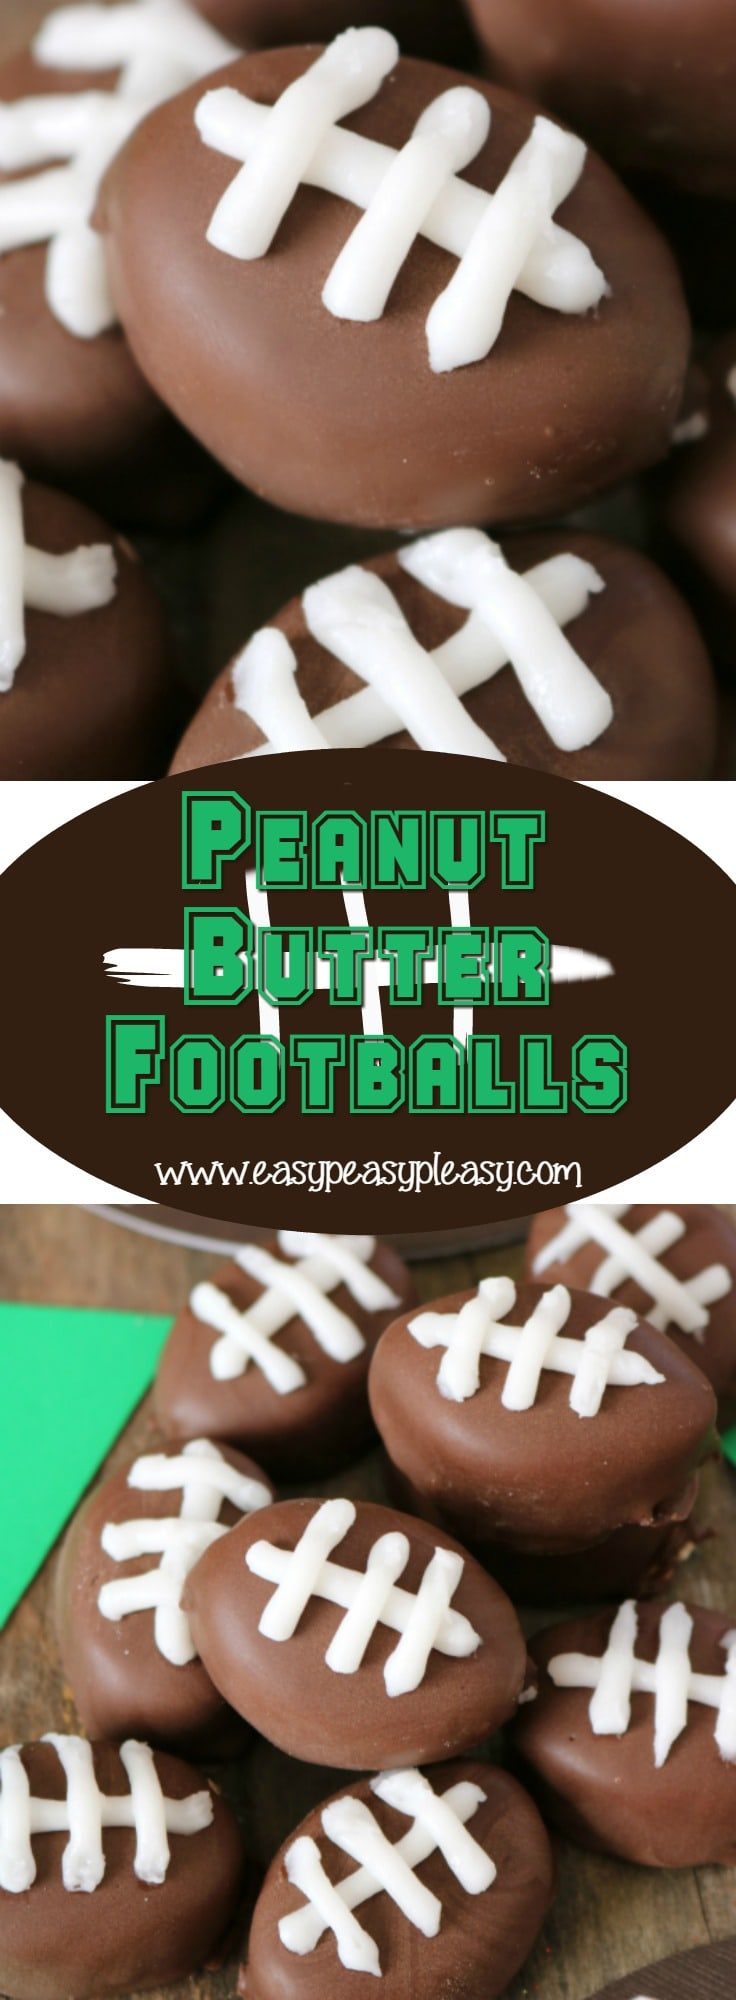 Peanut Butter Balls that will make football fans cheers make the perfect sweet treat on Game Day. Superbowl food made easy.